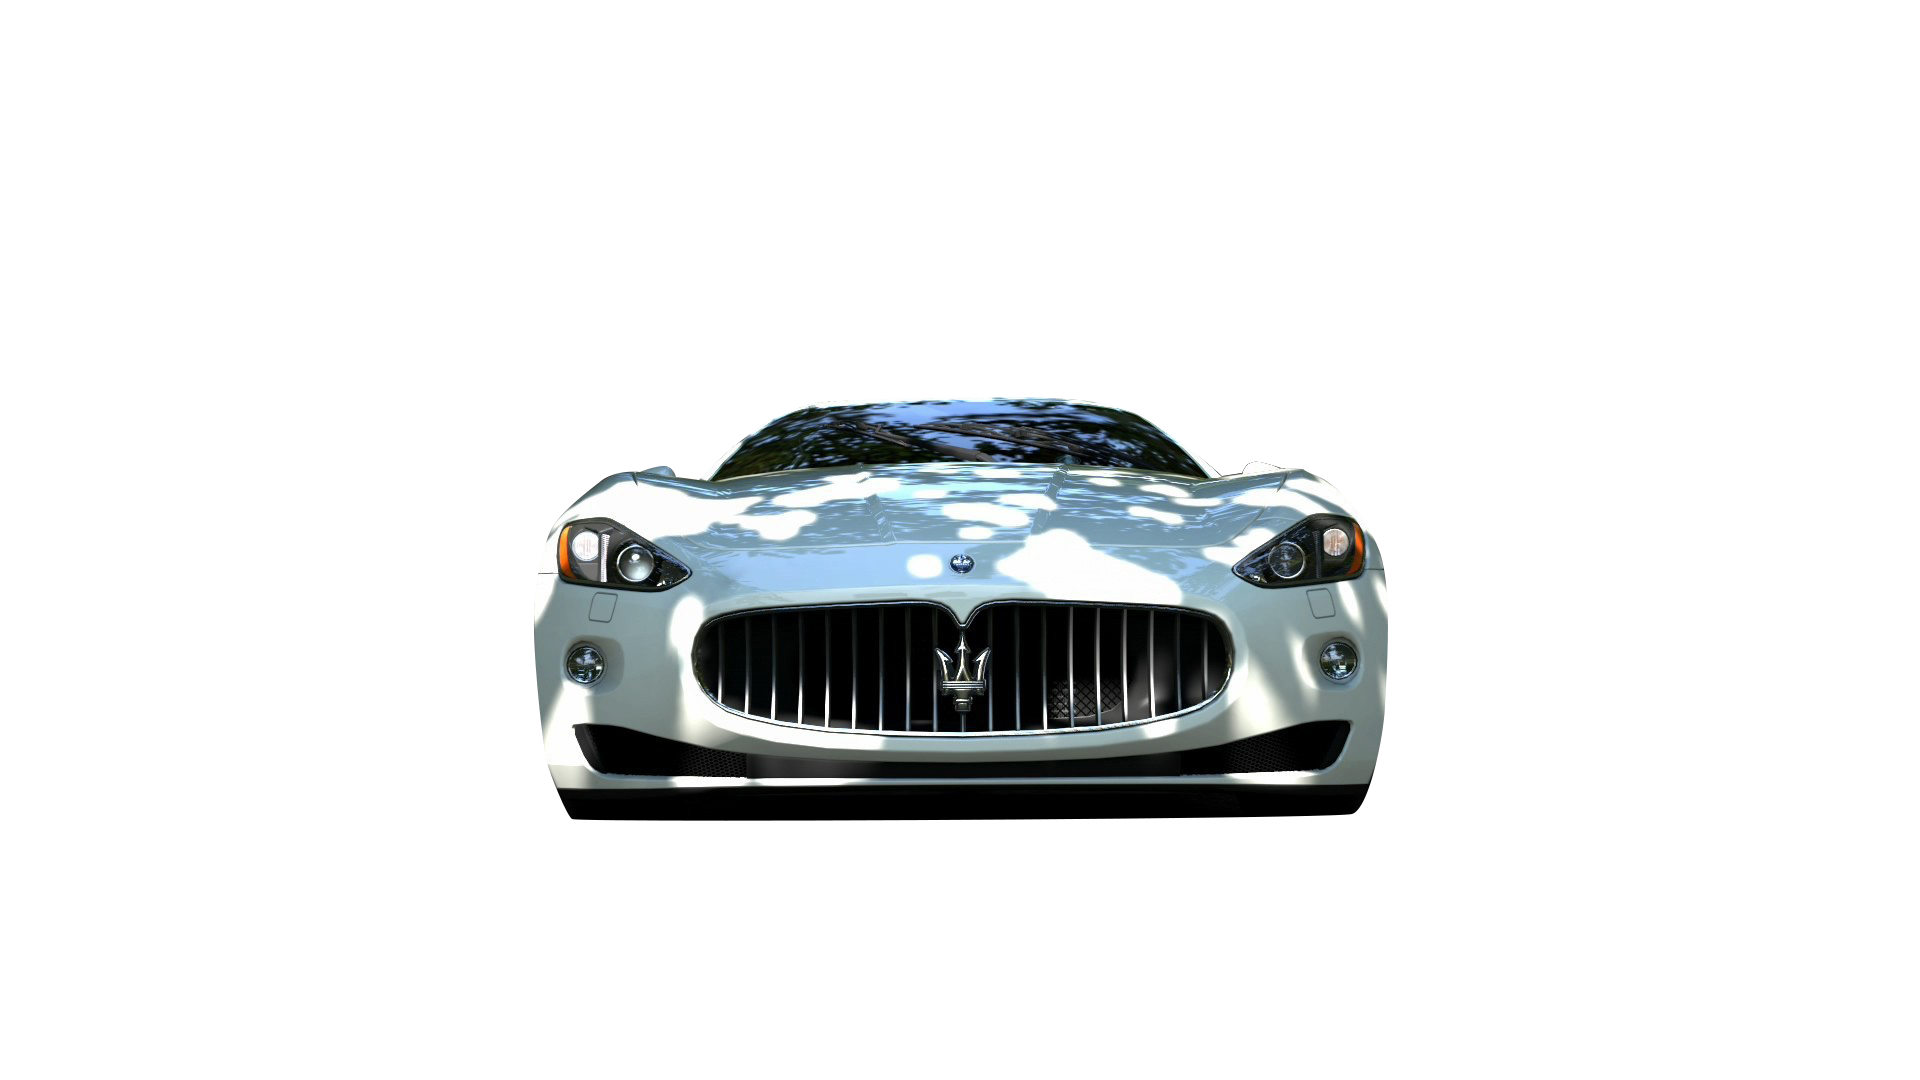 Maserati Car Wallpaper Sports Computer Luxury Vehicle PNG Image